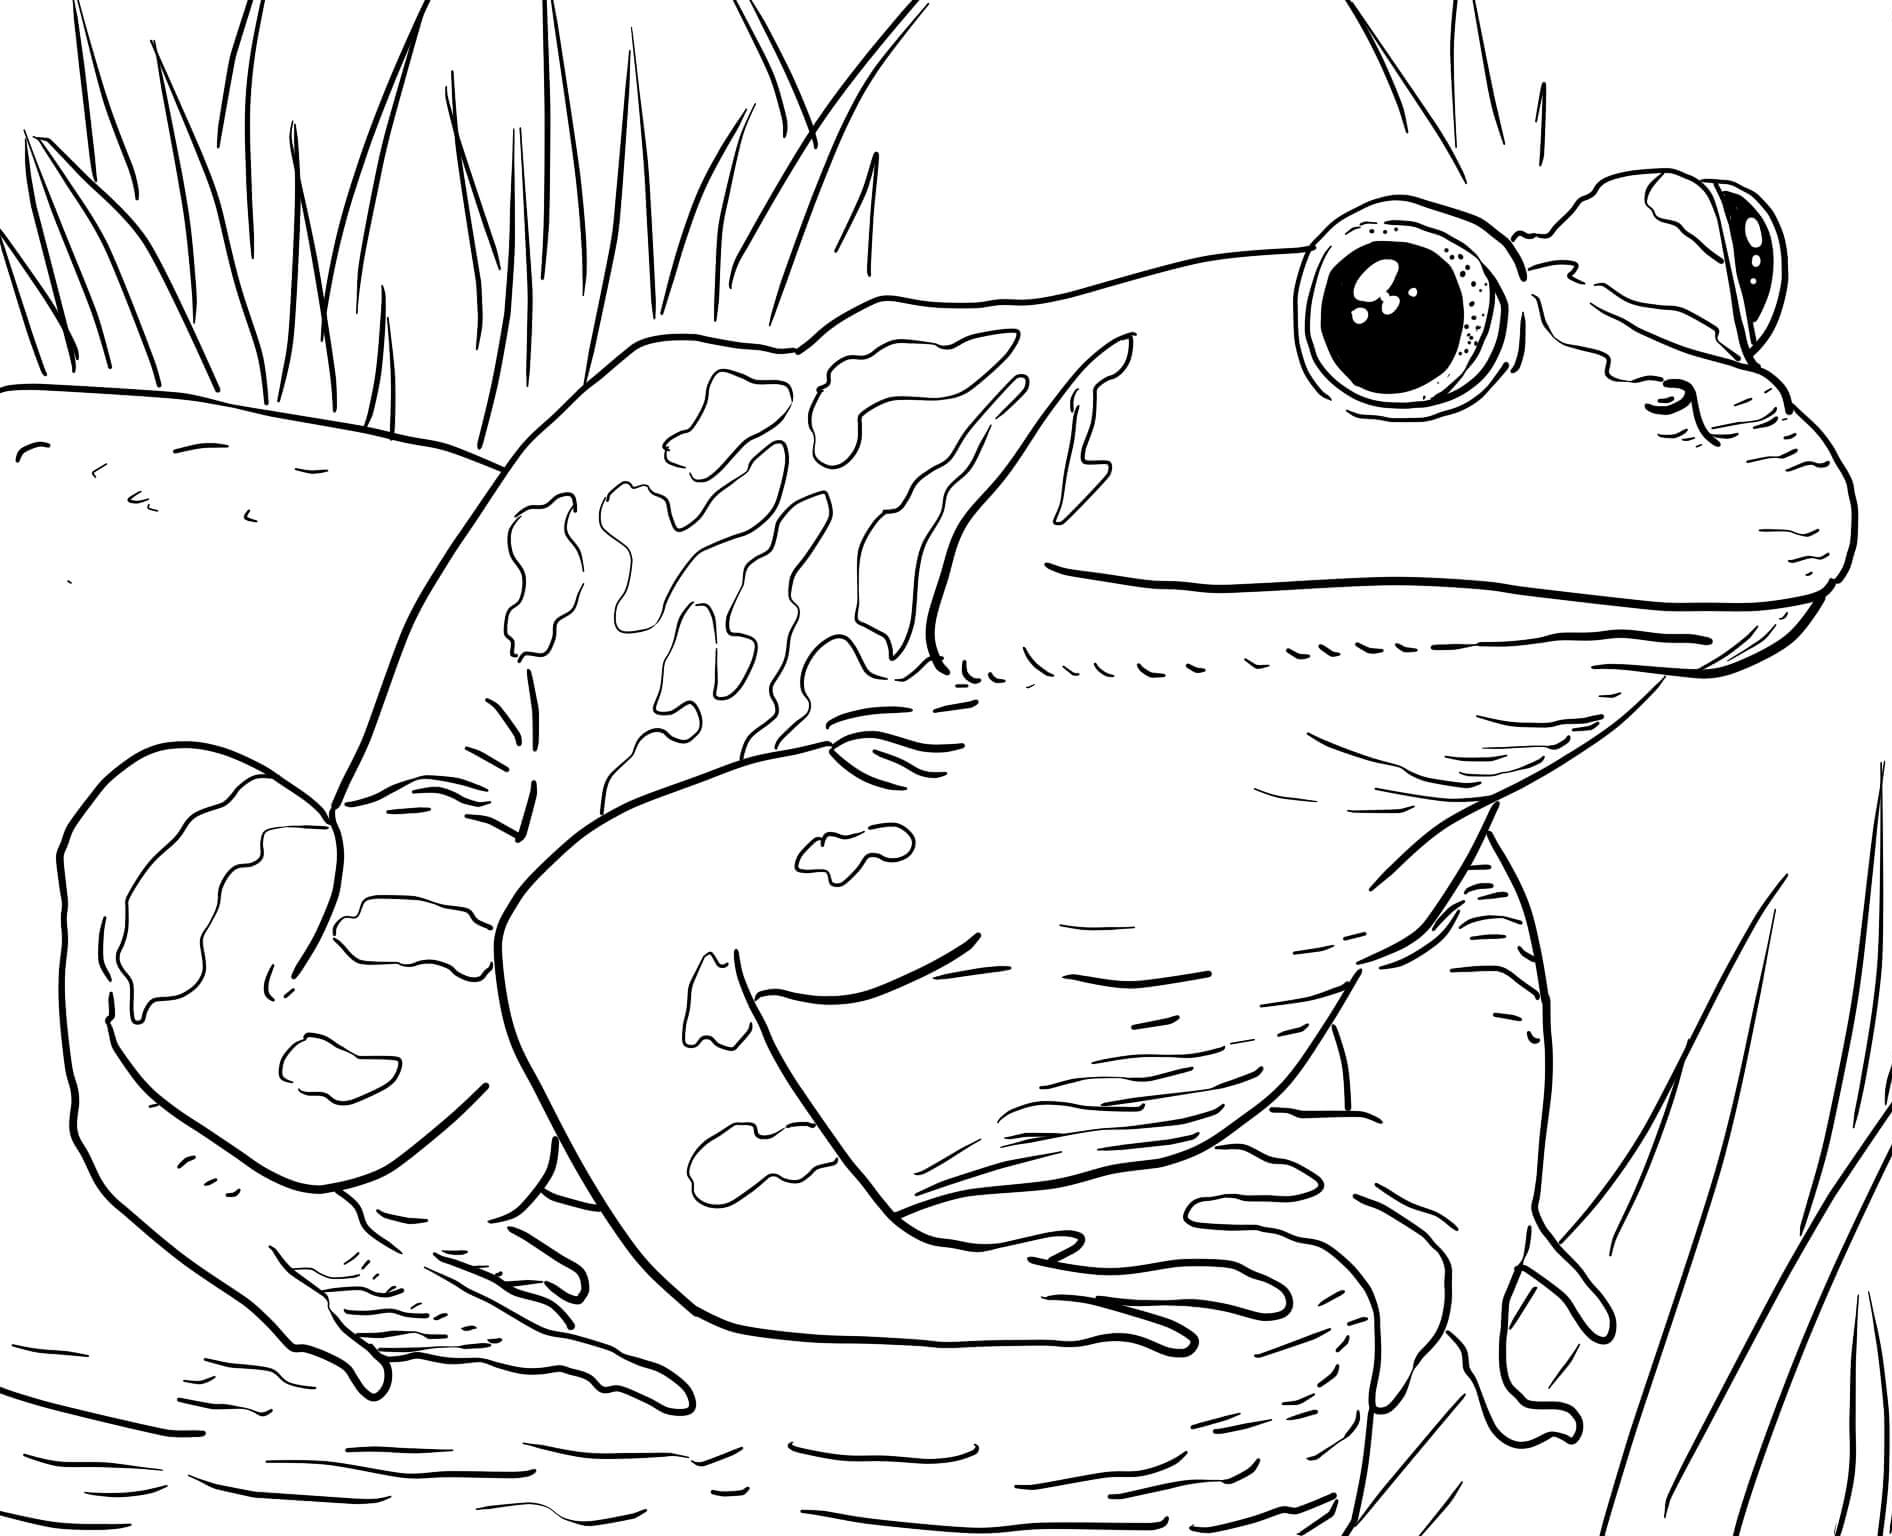 Zoo Animals Coloring Pages - Best Coloring Pages For Kids